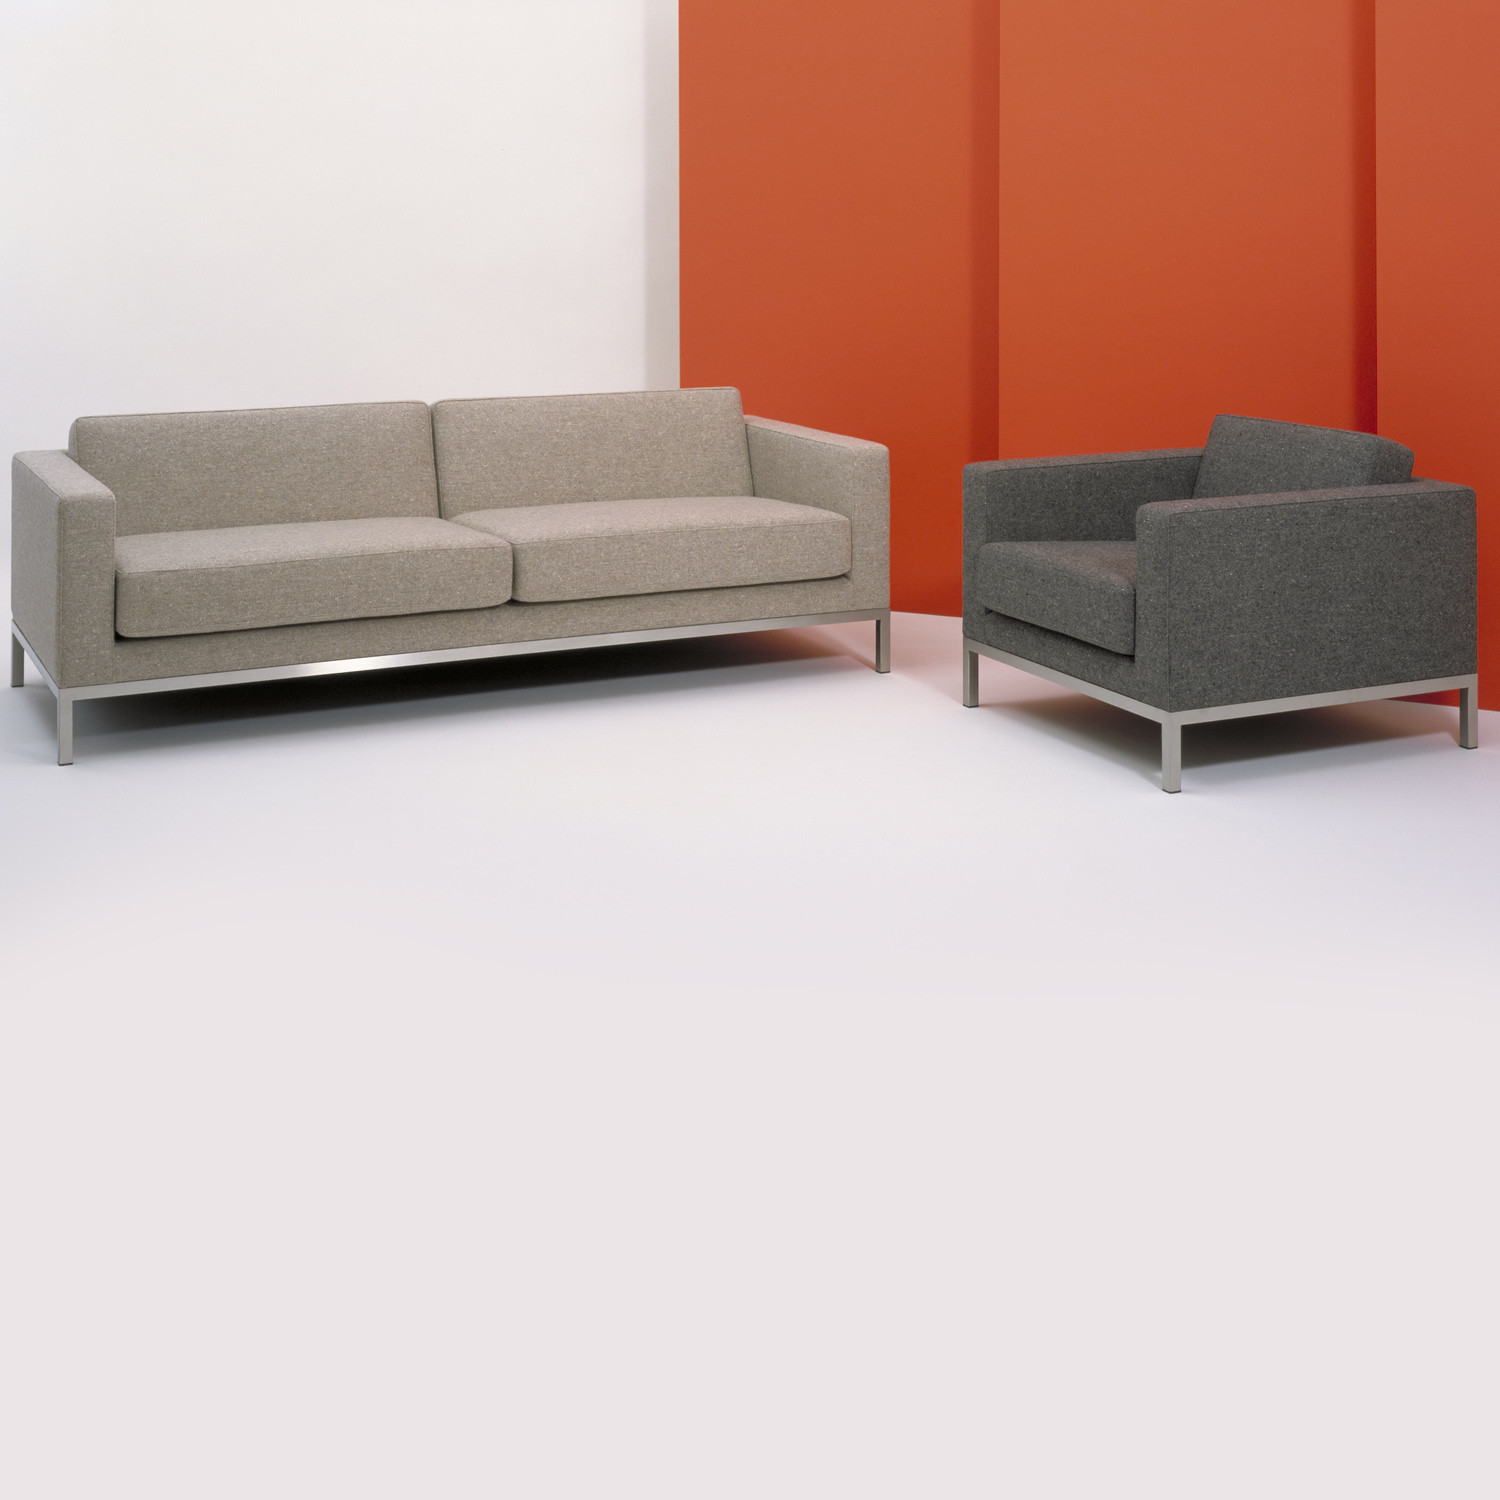 HM26 Sofa Range by Hitch Mylius